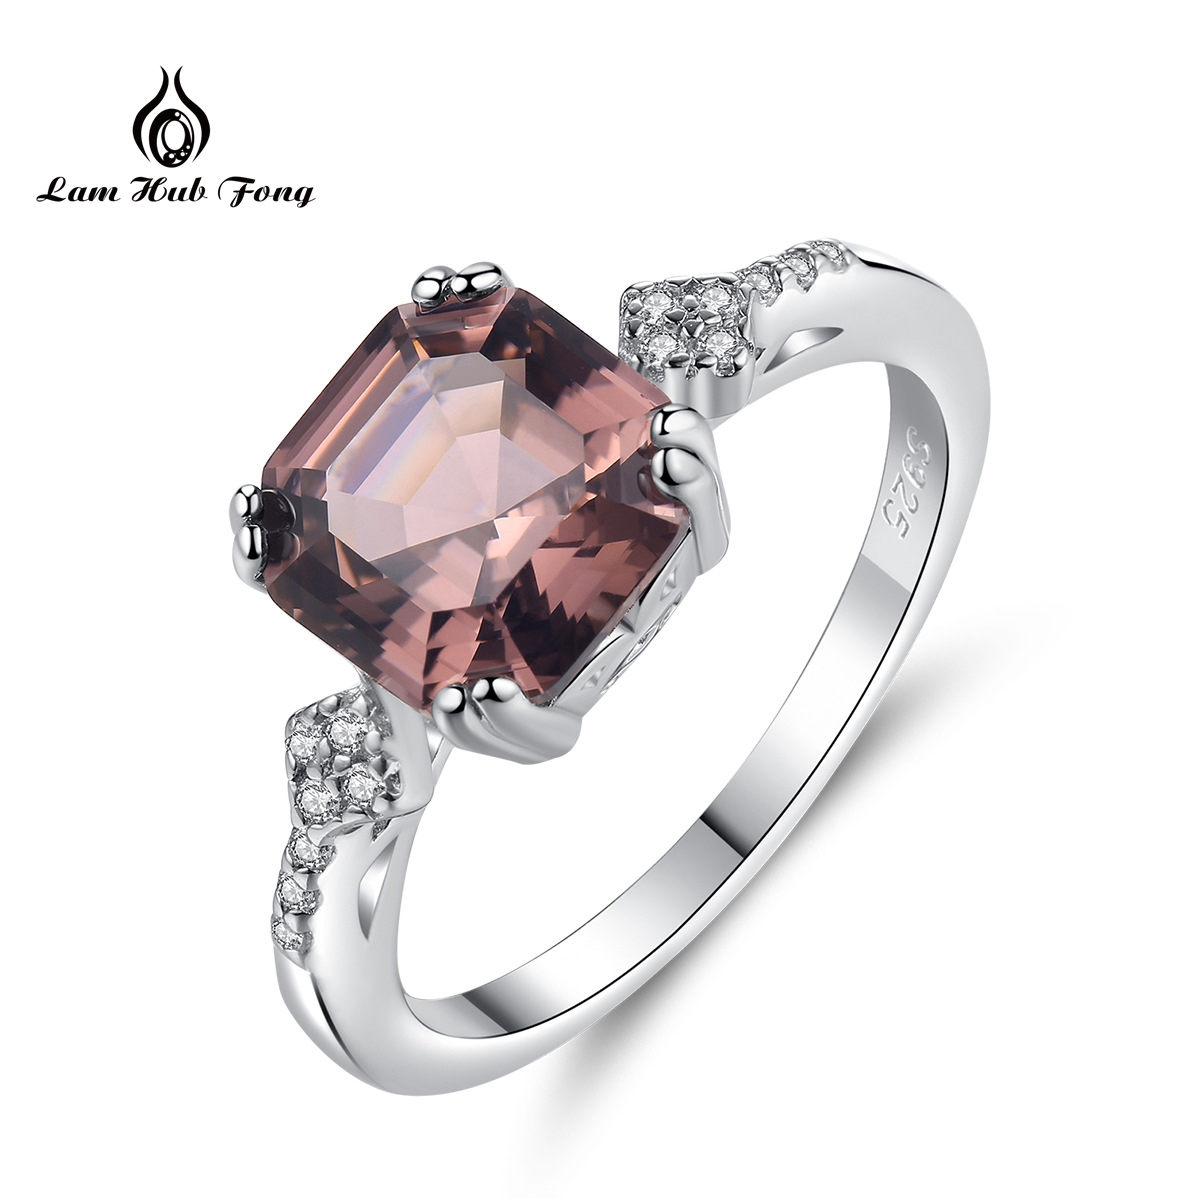 Promotion Morganite Ring Wedding Ring Pure Solid 925 Sterling Sliver Fine Jewelry Brown Ring For Men Gift DropshippingPromotion Morganite Ring Wedding Ring Pure Solid 925 Sterling Sliver Fine Jewelry Brown Ring For Men Gift Dropshipping